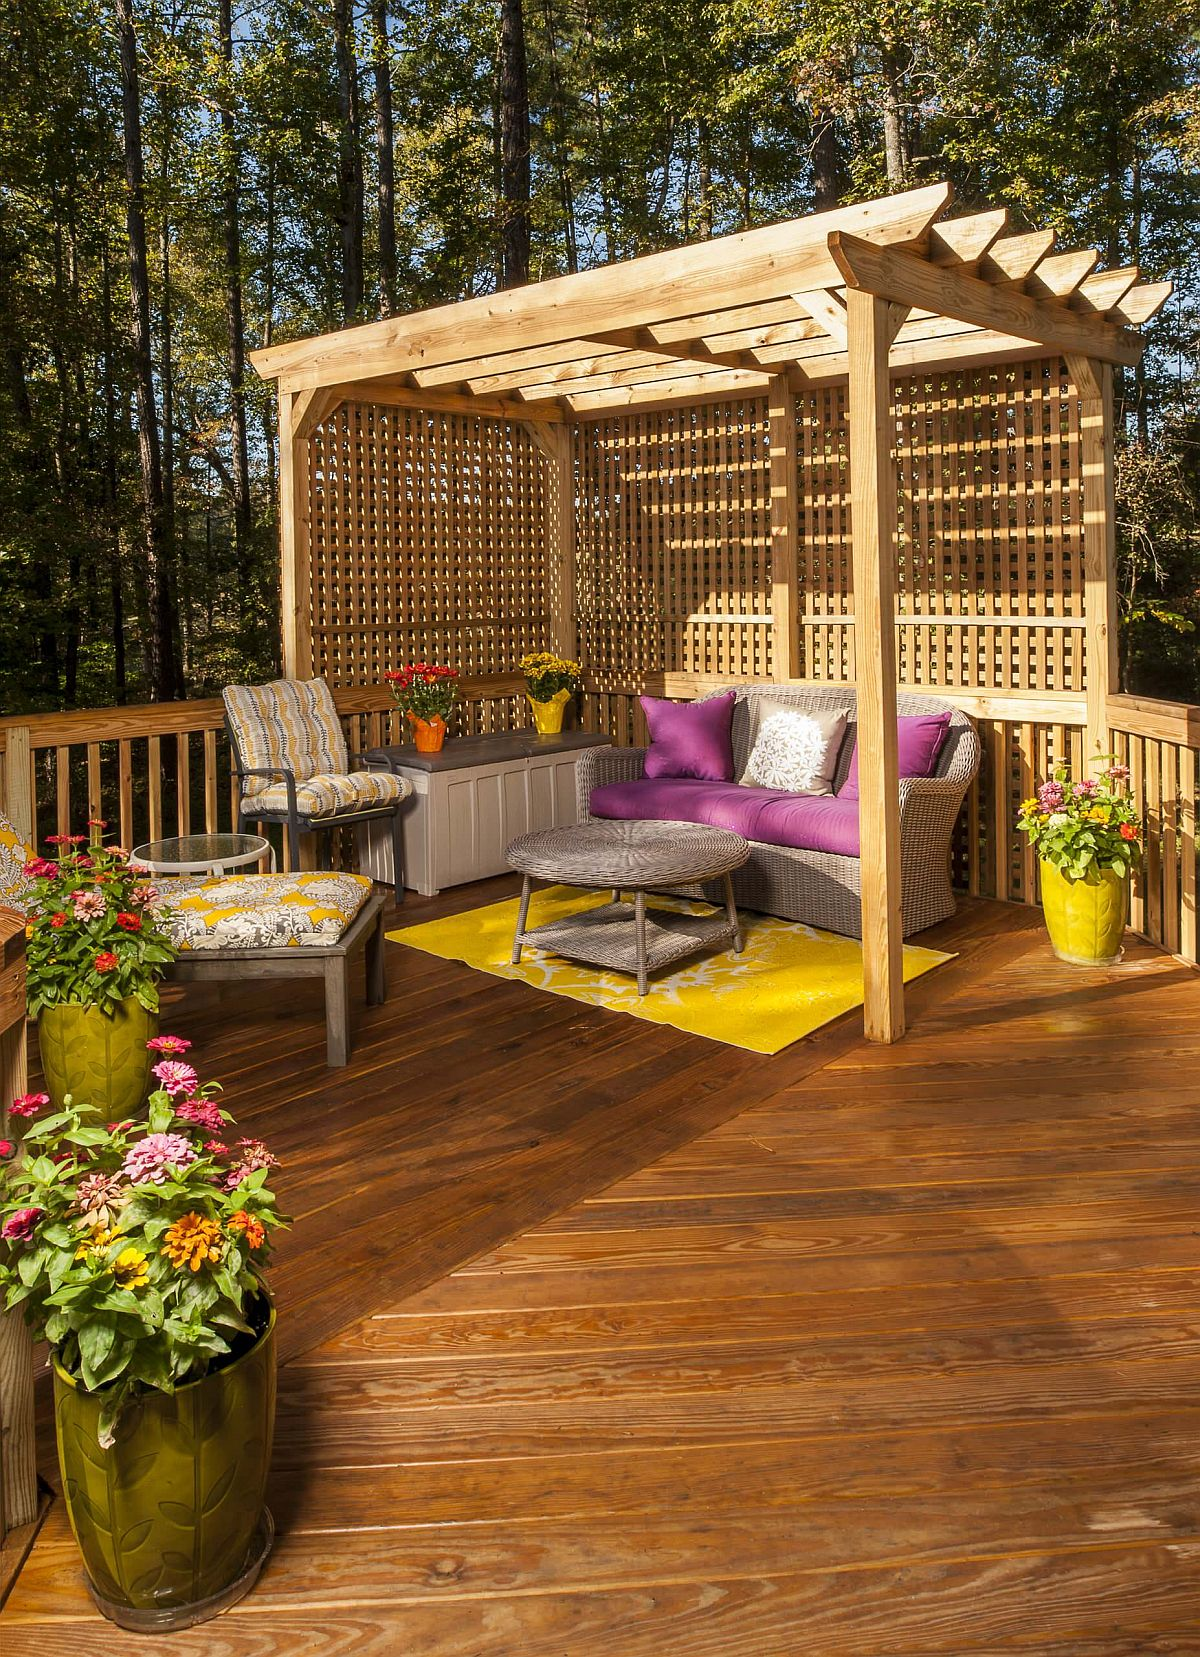 Awesome wooden pergola coupled with brilliant pops of color and flowering plants for a relaxing outdoor space